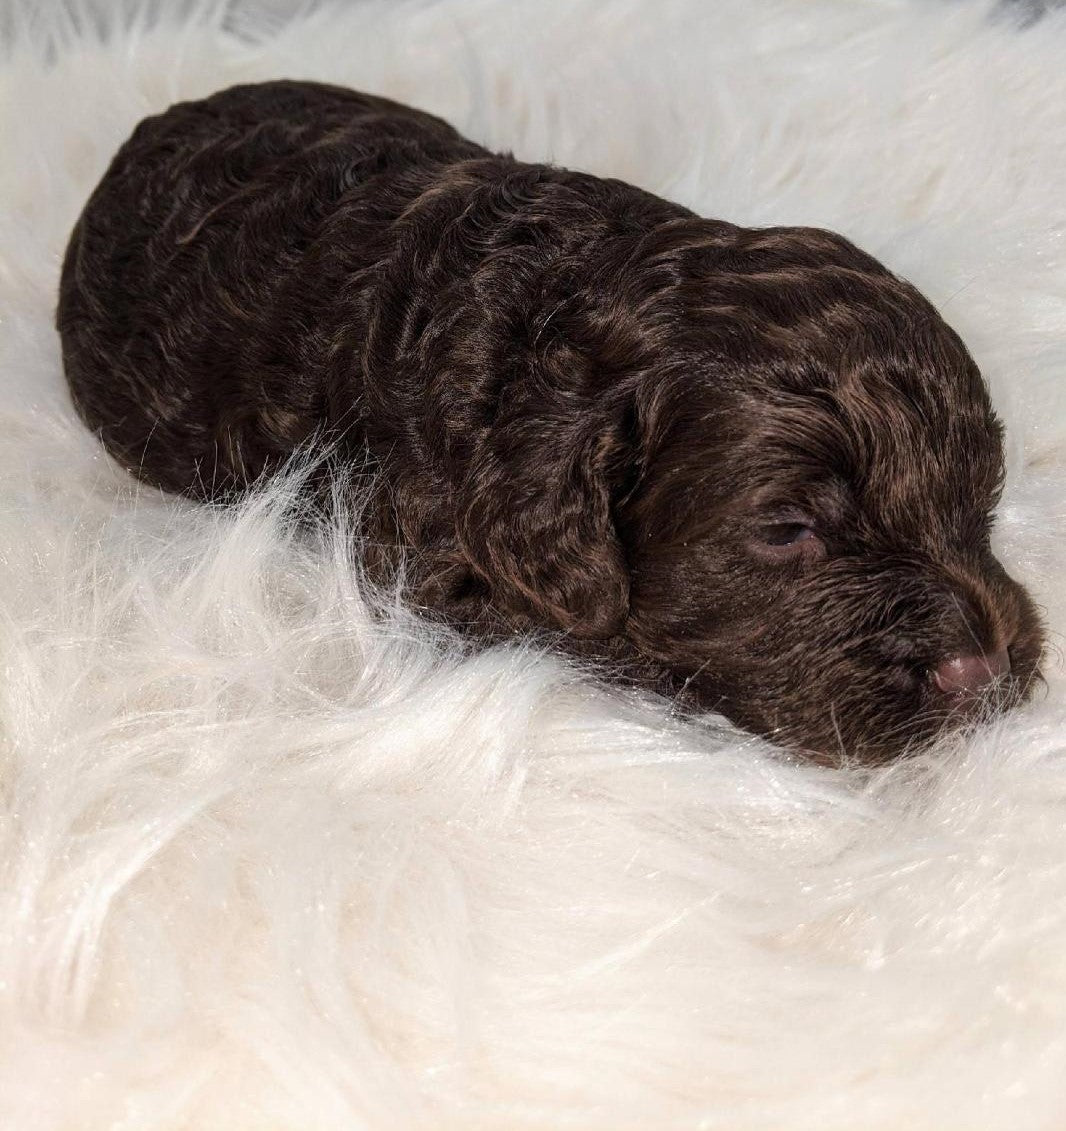 Cockapoo Puppy For Sale Dundee Ohio Male Ronnie Ac Puppies Llc